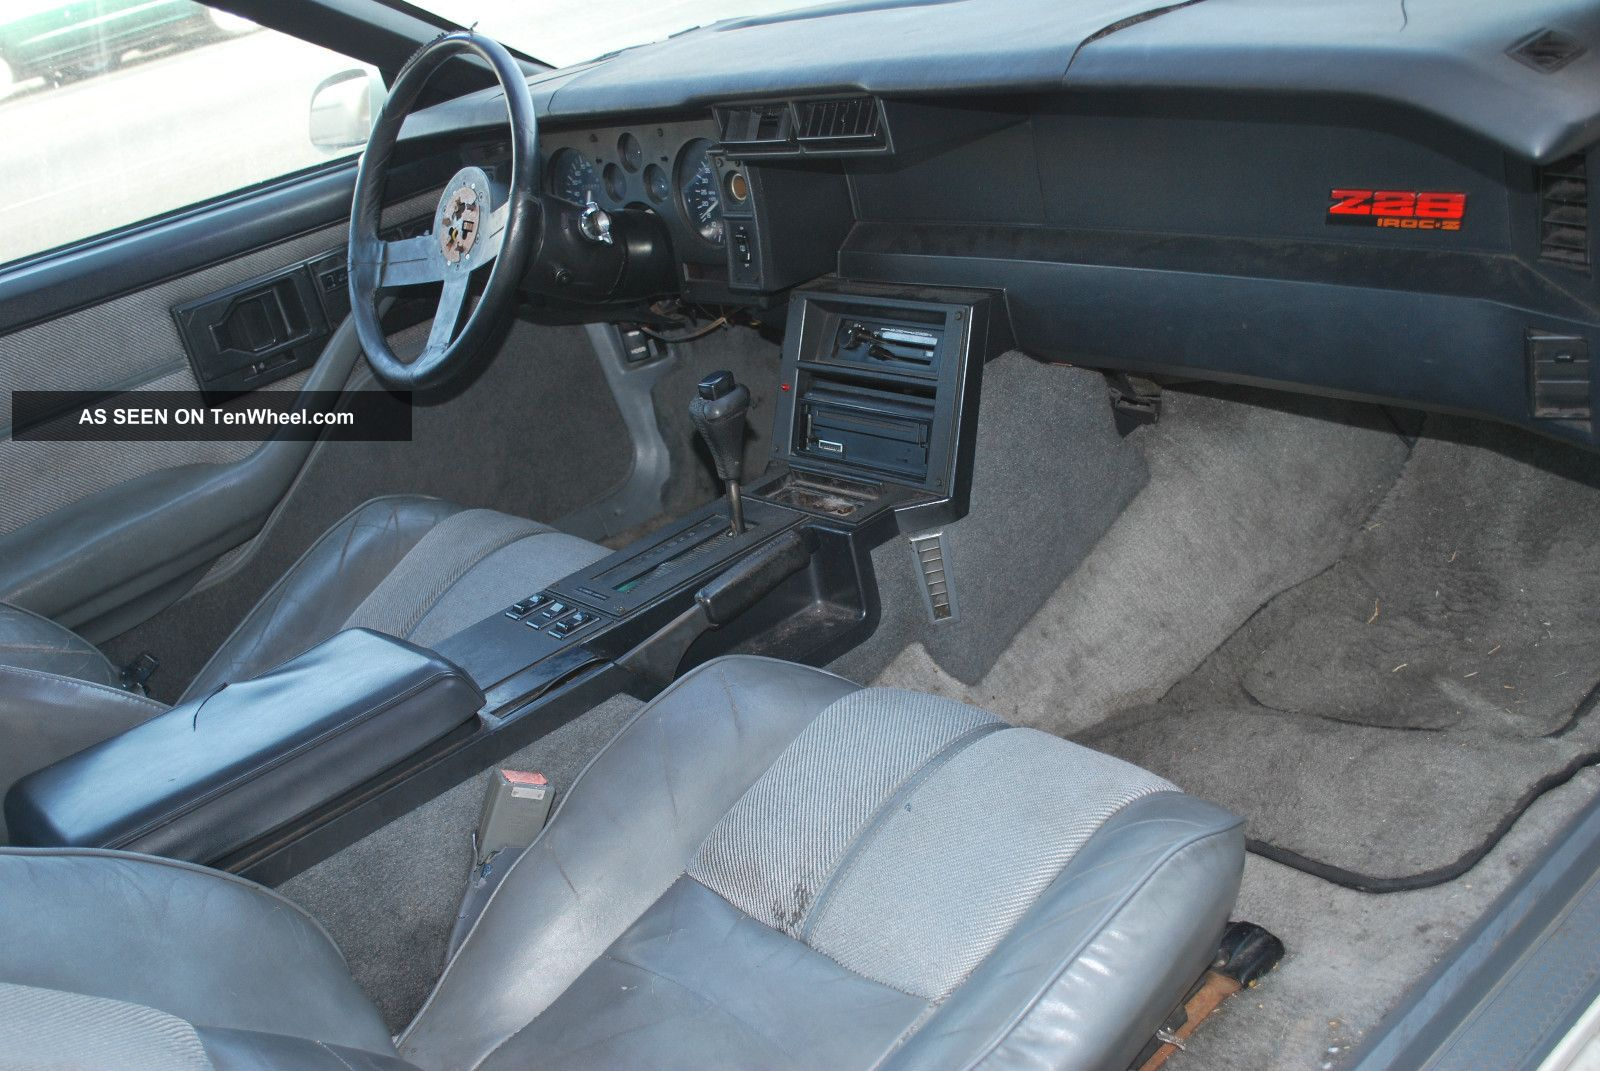 1997 camaro lt1 wiring harness on 1997 images free download 95 Lt1 Wiring Harness Diagram 1997 camaro lt1 wiring harness 2 lt1 engine harness diagram lt1 wiring diagram 1995 lt1 wiring harness diagram